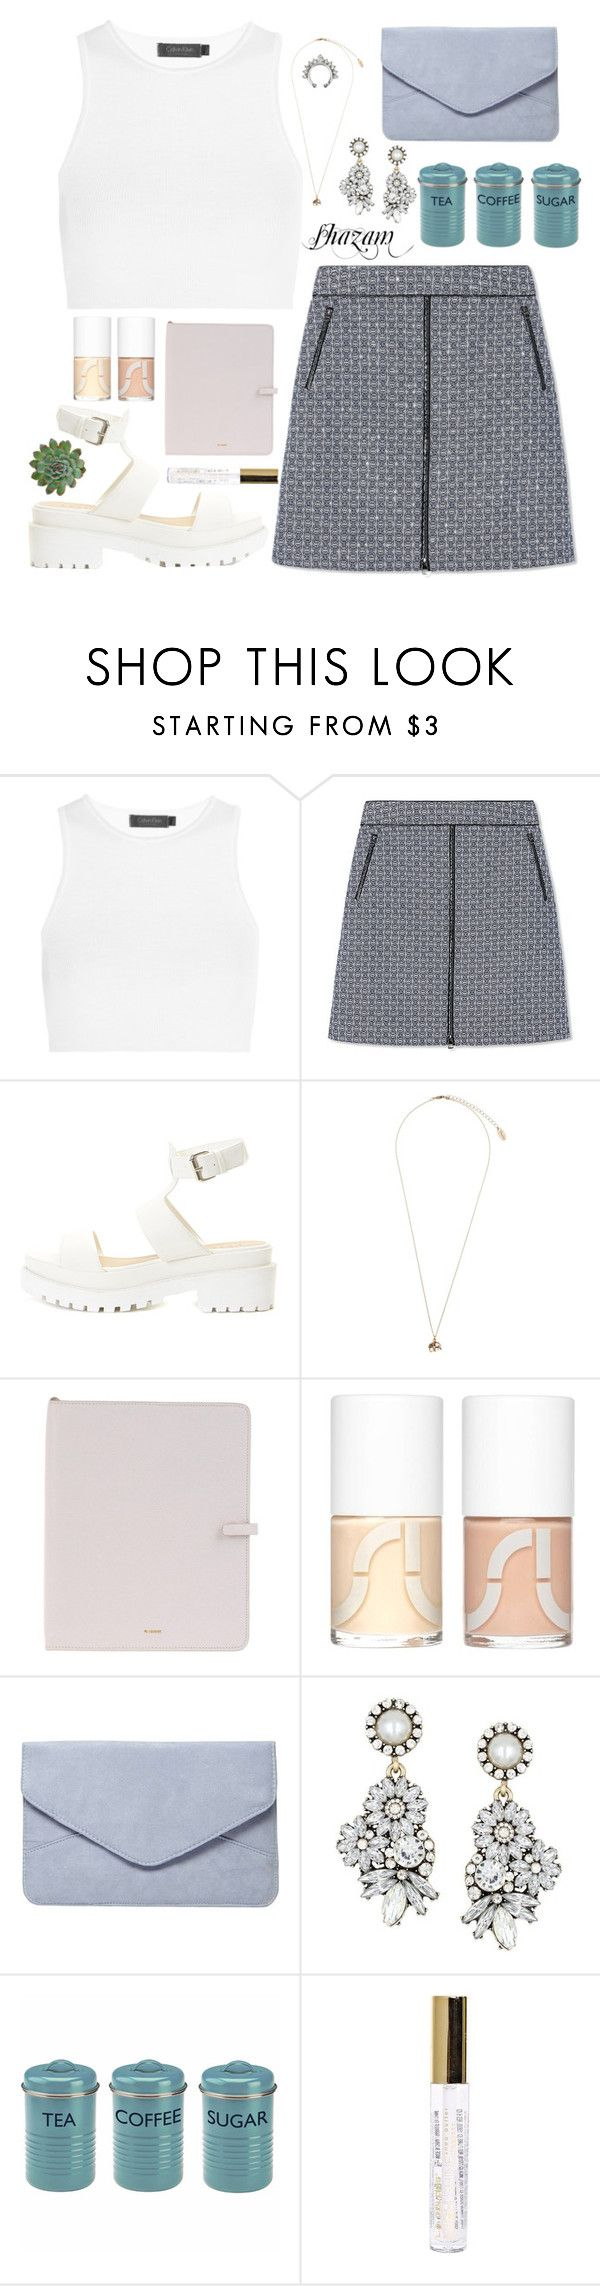 """""""Dory"""" by anishagarner ❤ liked on Polyvore featuring Calvin Klein Collection, Tory Burch, Topshop, Jil Sander, Uslu Airlines, Dorothy Perkins and L.A. Colors"""